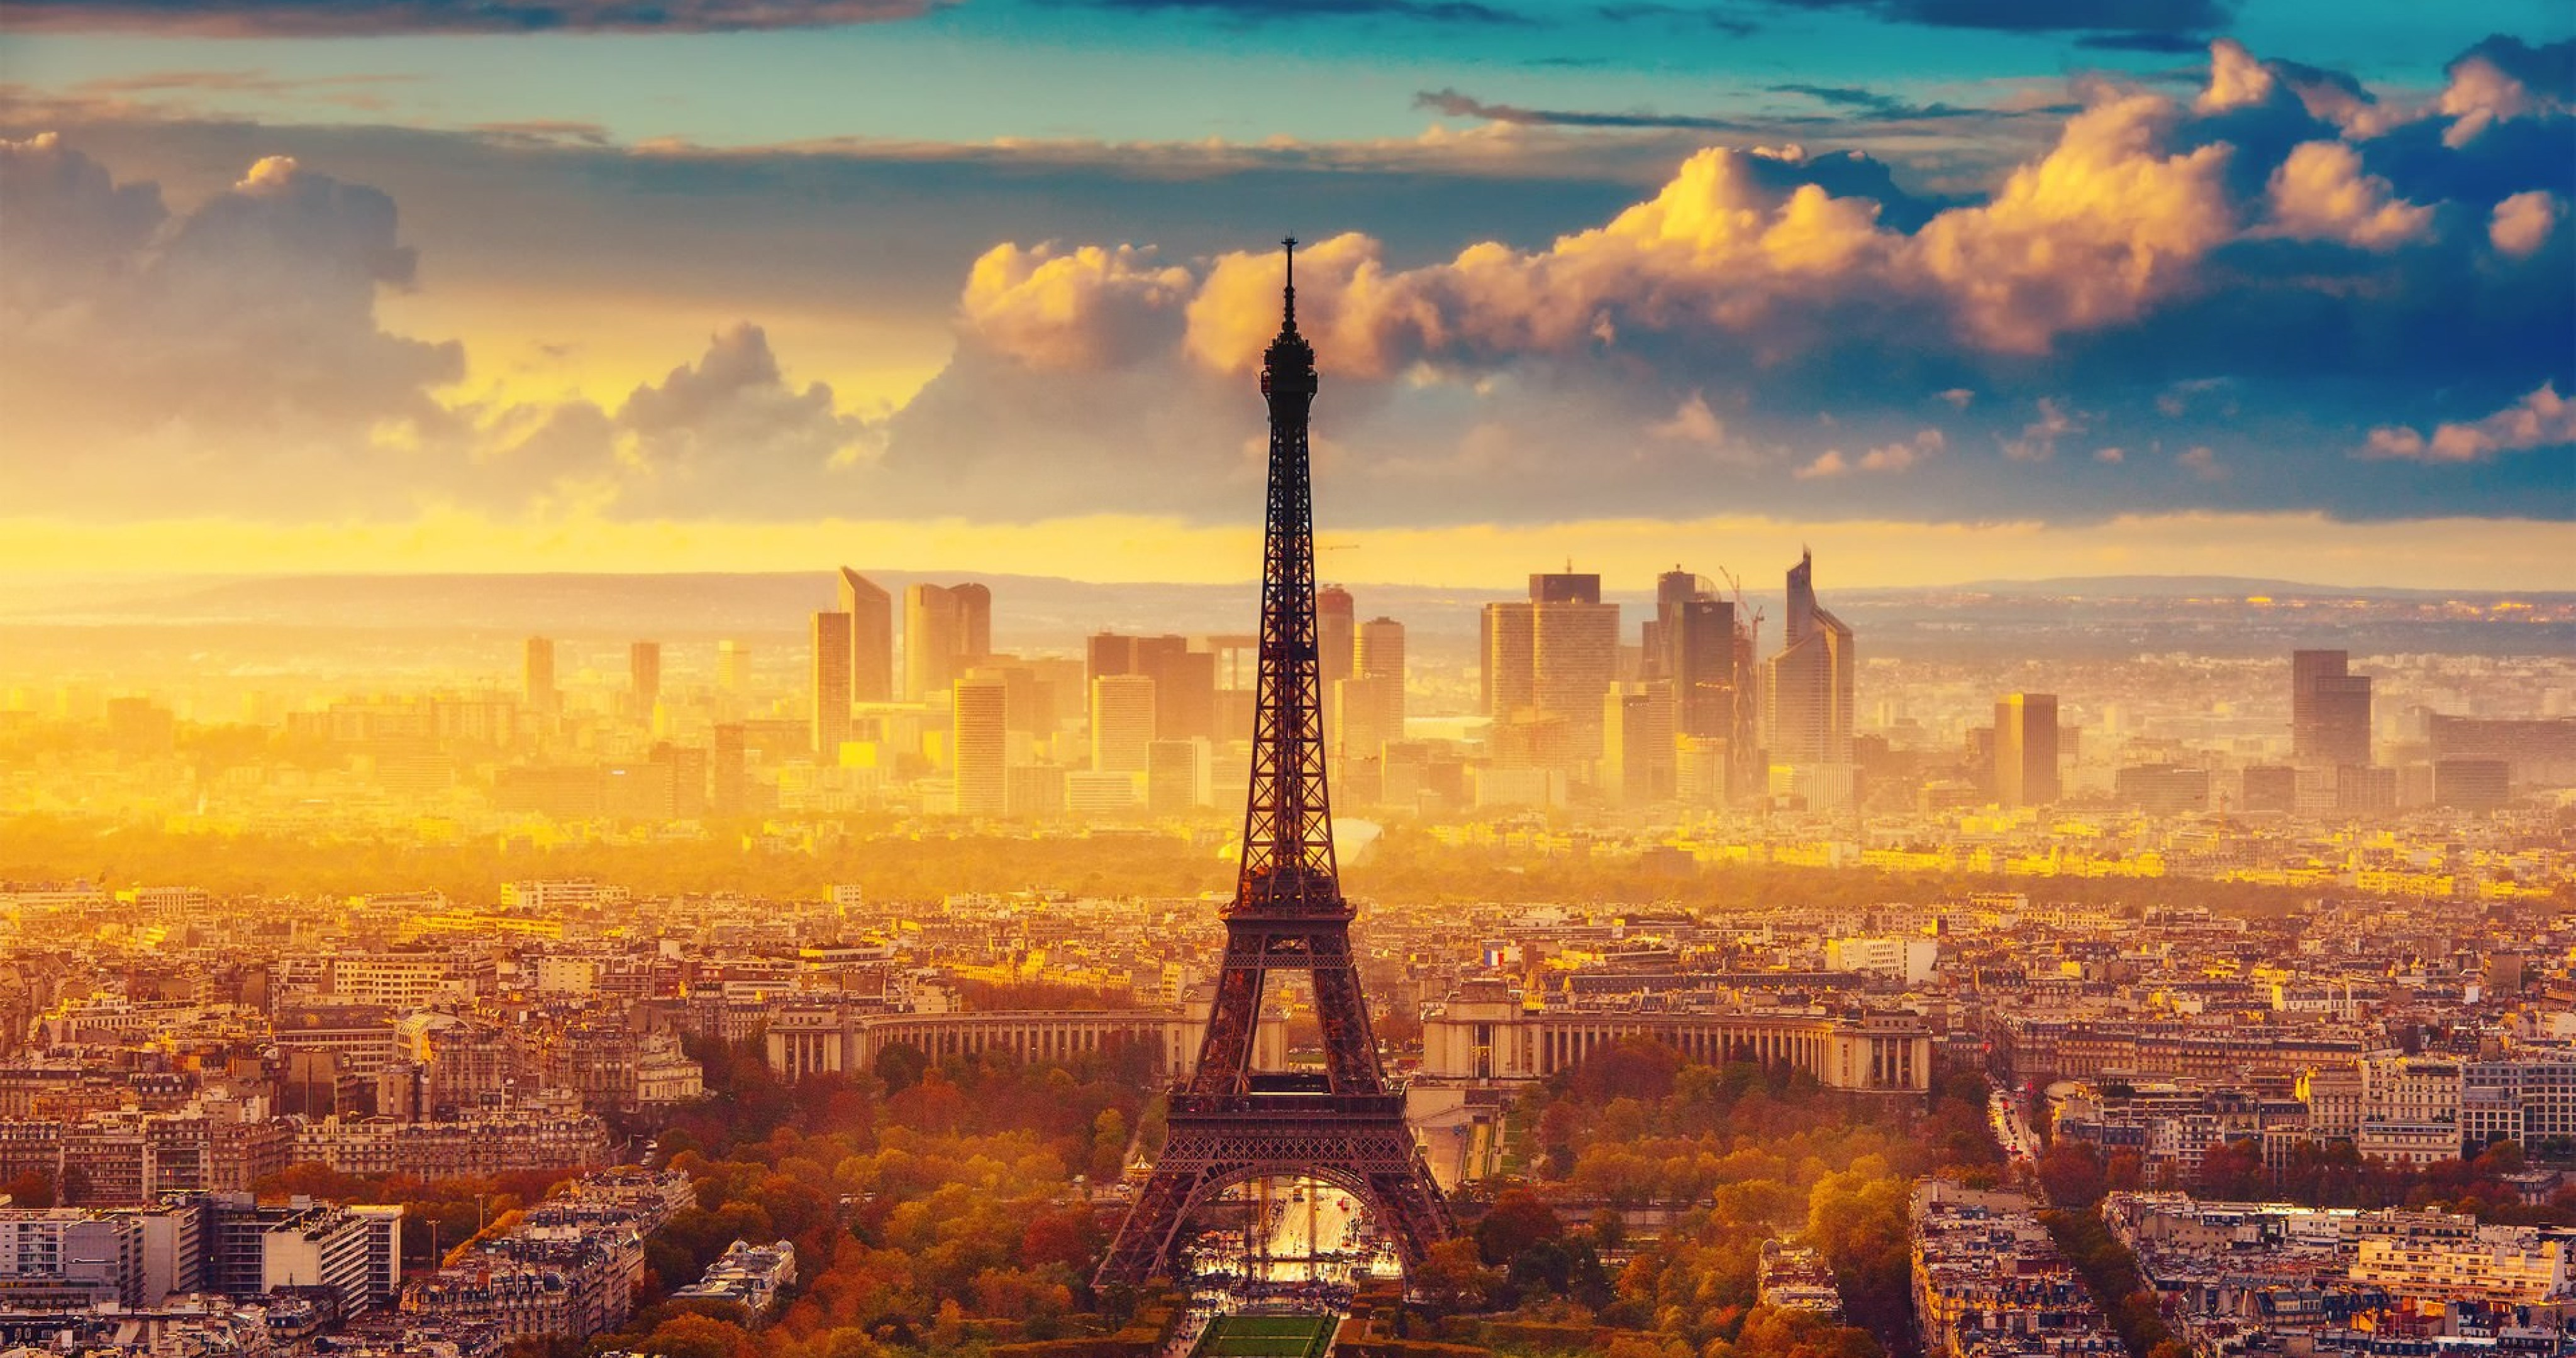 Must see Wallpaper High Quality Paris - 73730-france-the-city-of-paris-eiffel-tower-4k-ultra-hd-wallpaper__cityscapes  You Should Have_20487.jpg